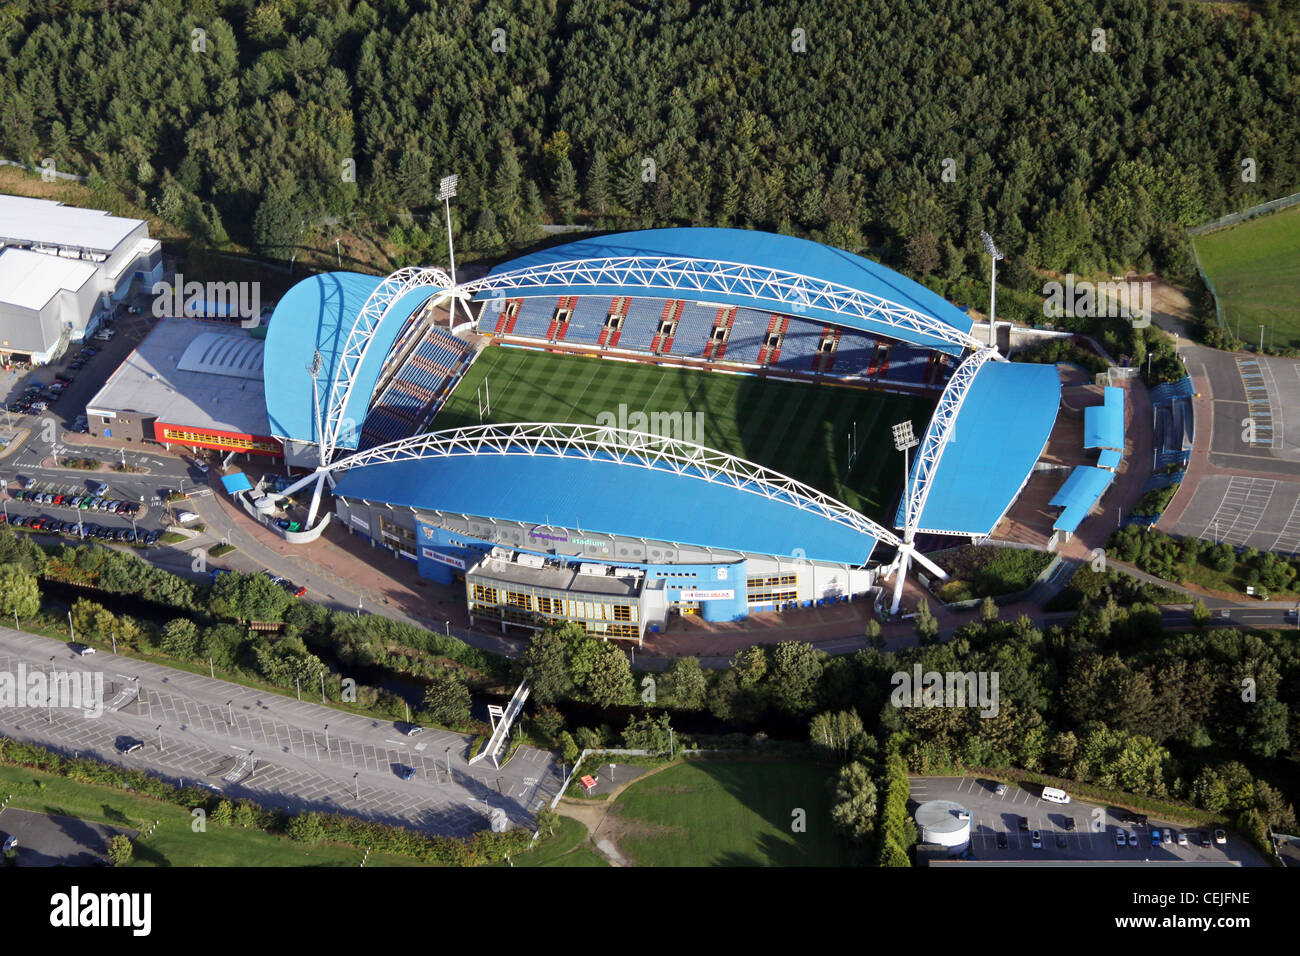 drone bird with Stock Photo Aerial Image Of The John Smiths Stadium Formerly The Galpharm Stadium 43433418 on Dji Mavic Pro in addition Spot Check Margaret River 107486 besides Alila Ubud as well Pod Tent Connected Tunnels likewise Dji Mavic Pro.